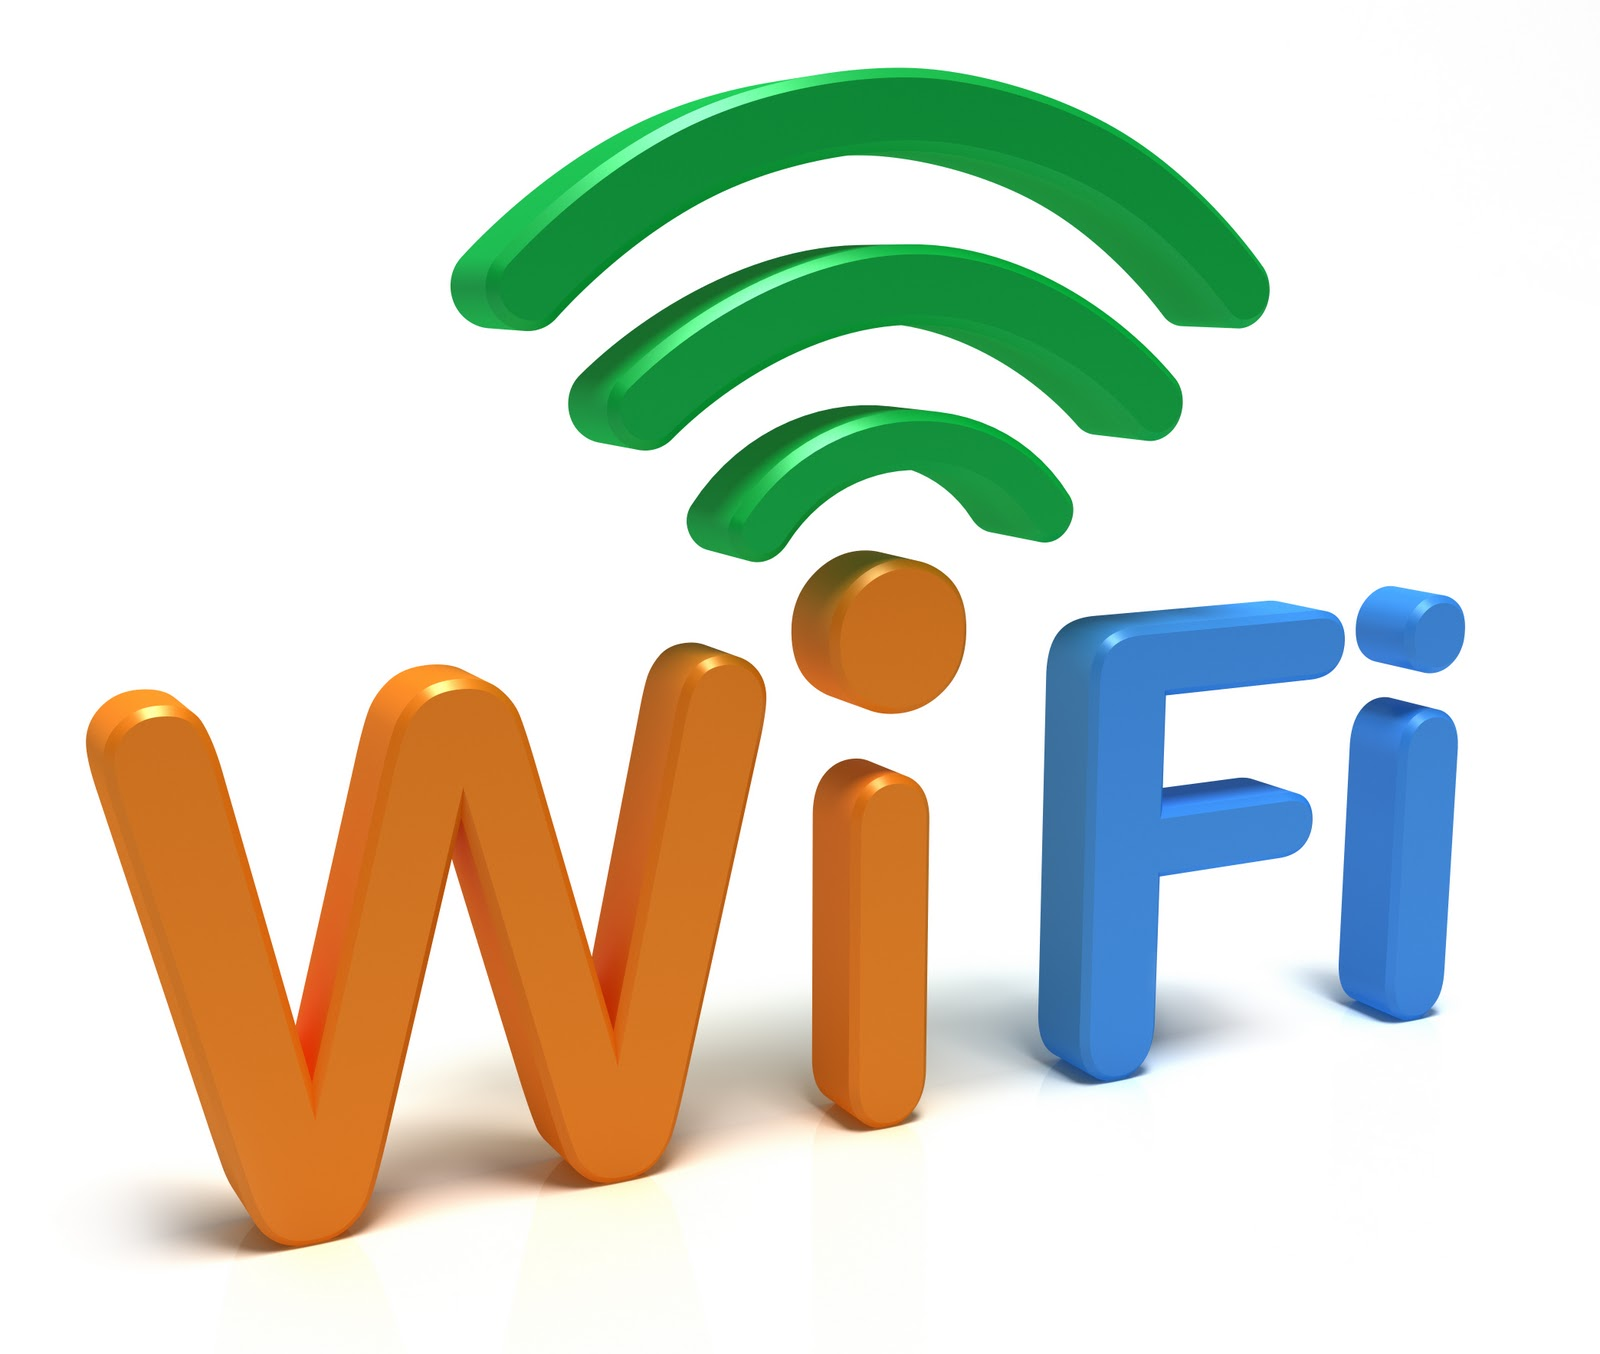 Easy solutions for WiFi connectivity problems